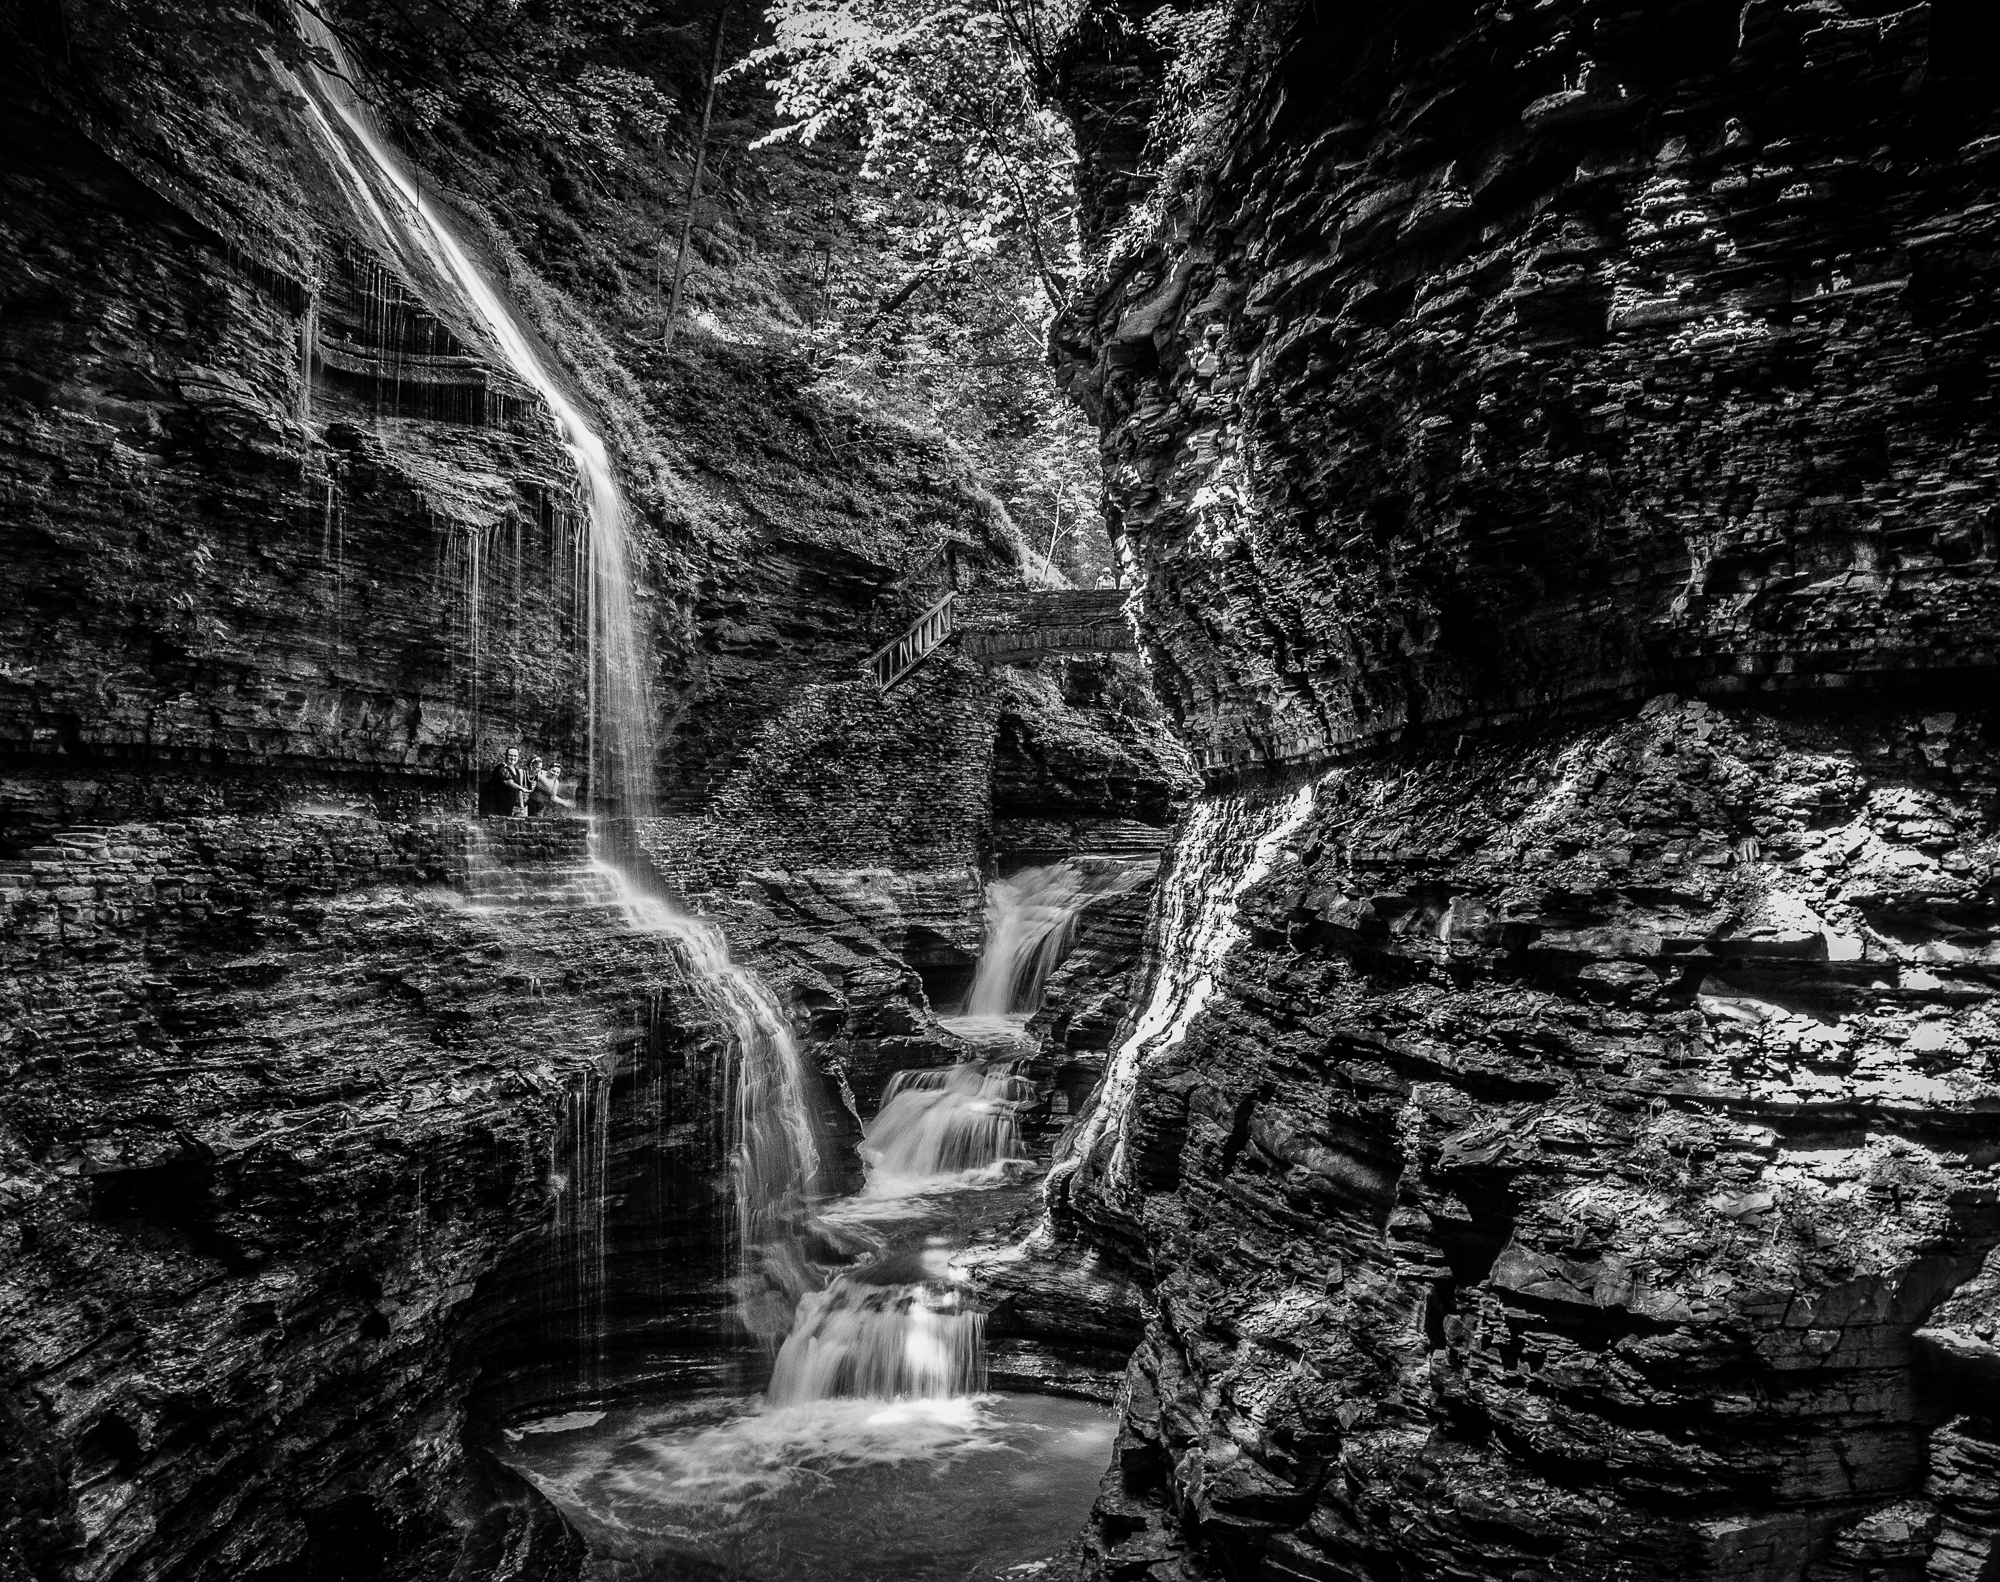 The Gorge at Watkins Glen